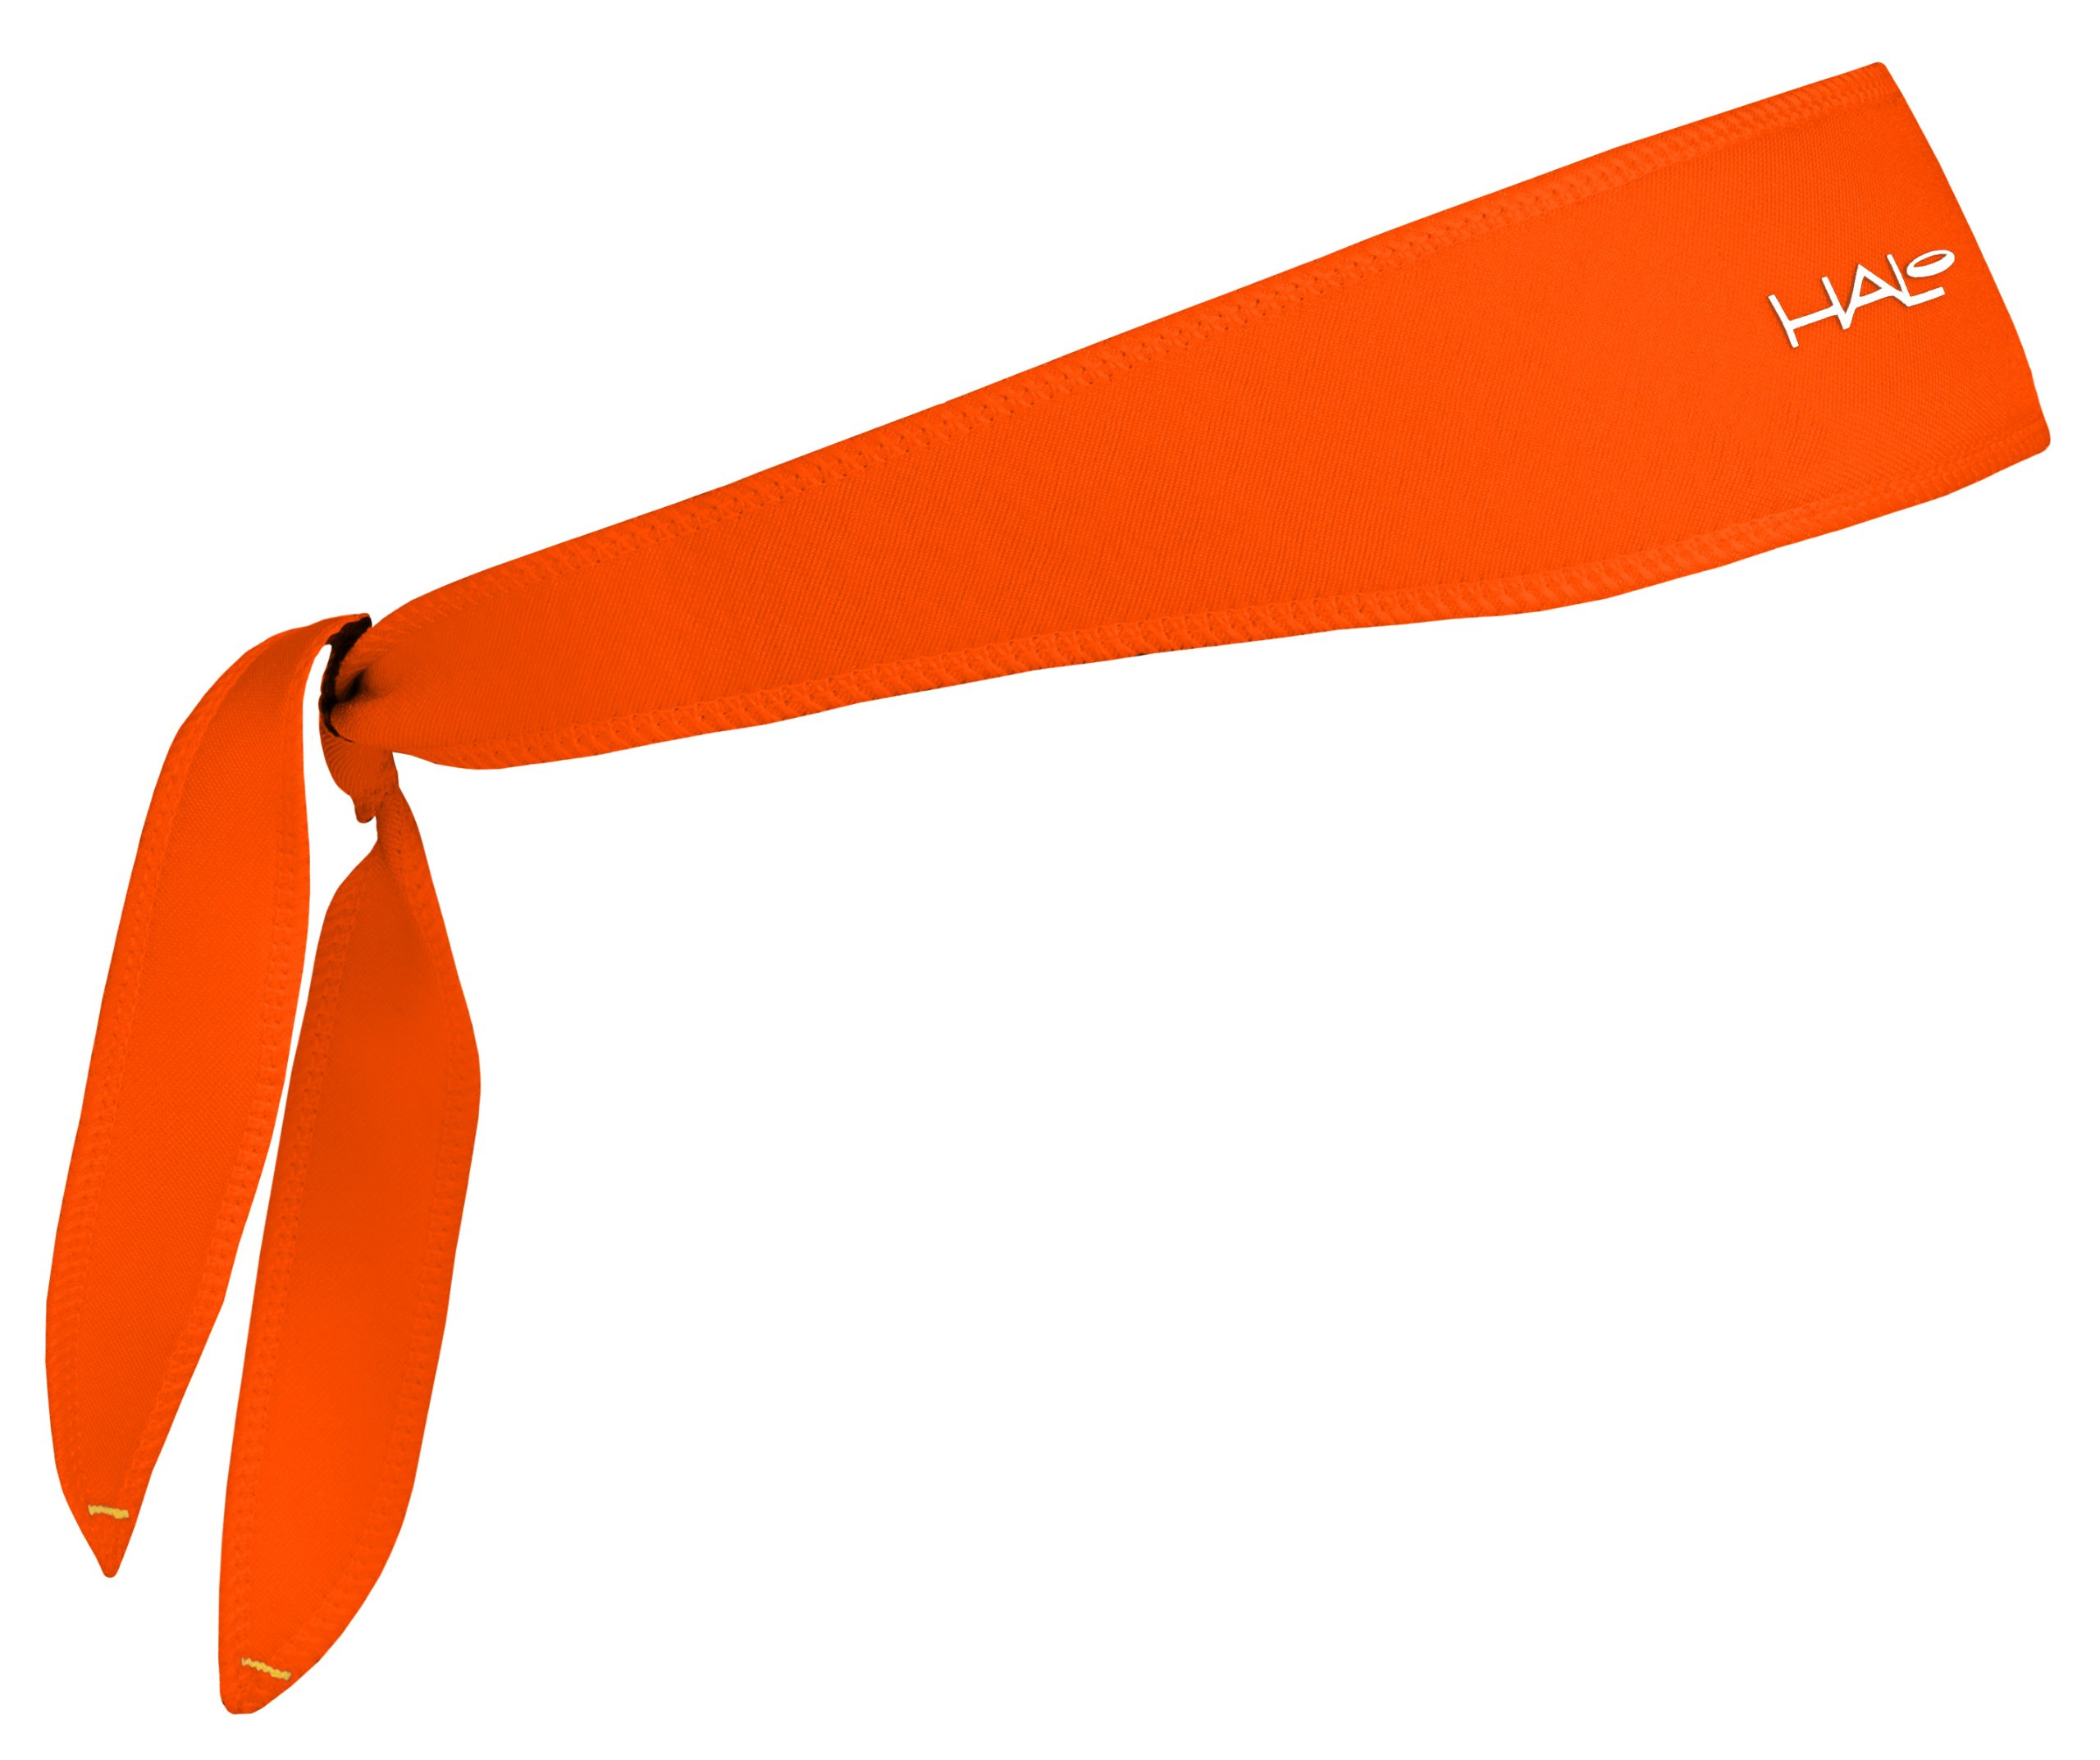 Halo Headband Sweatband Tie Bright Orange by Halo Headbands (Image #1)